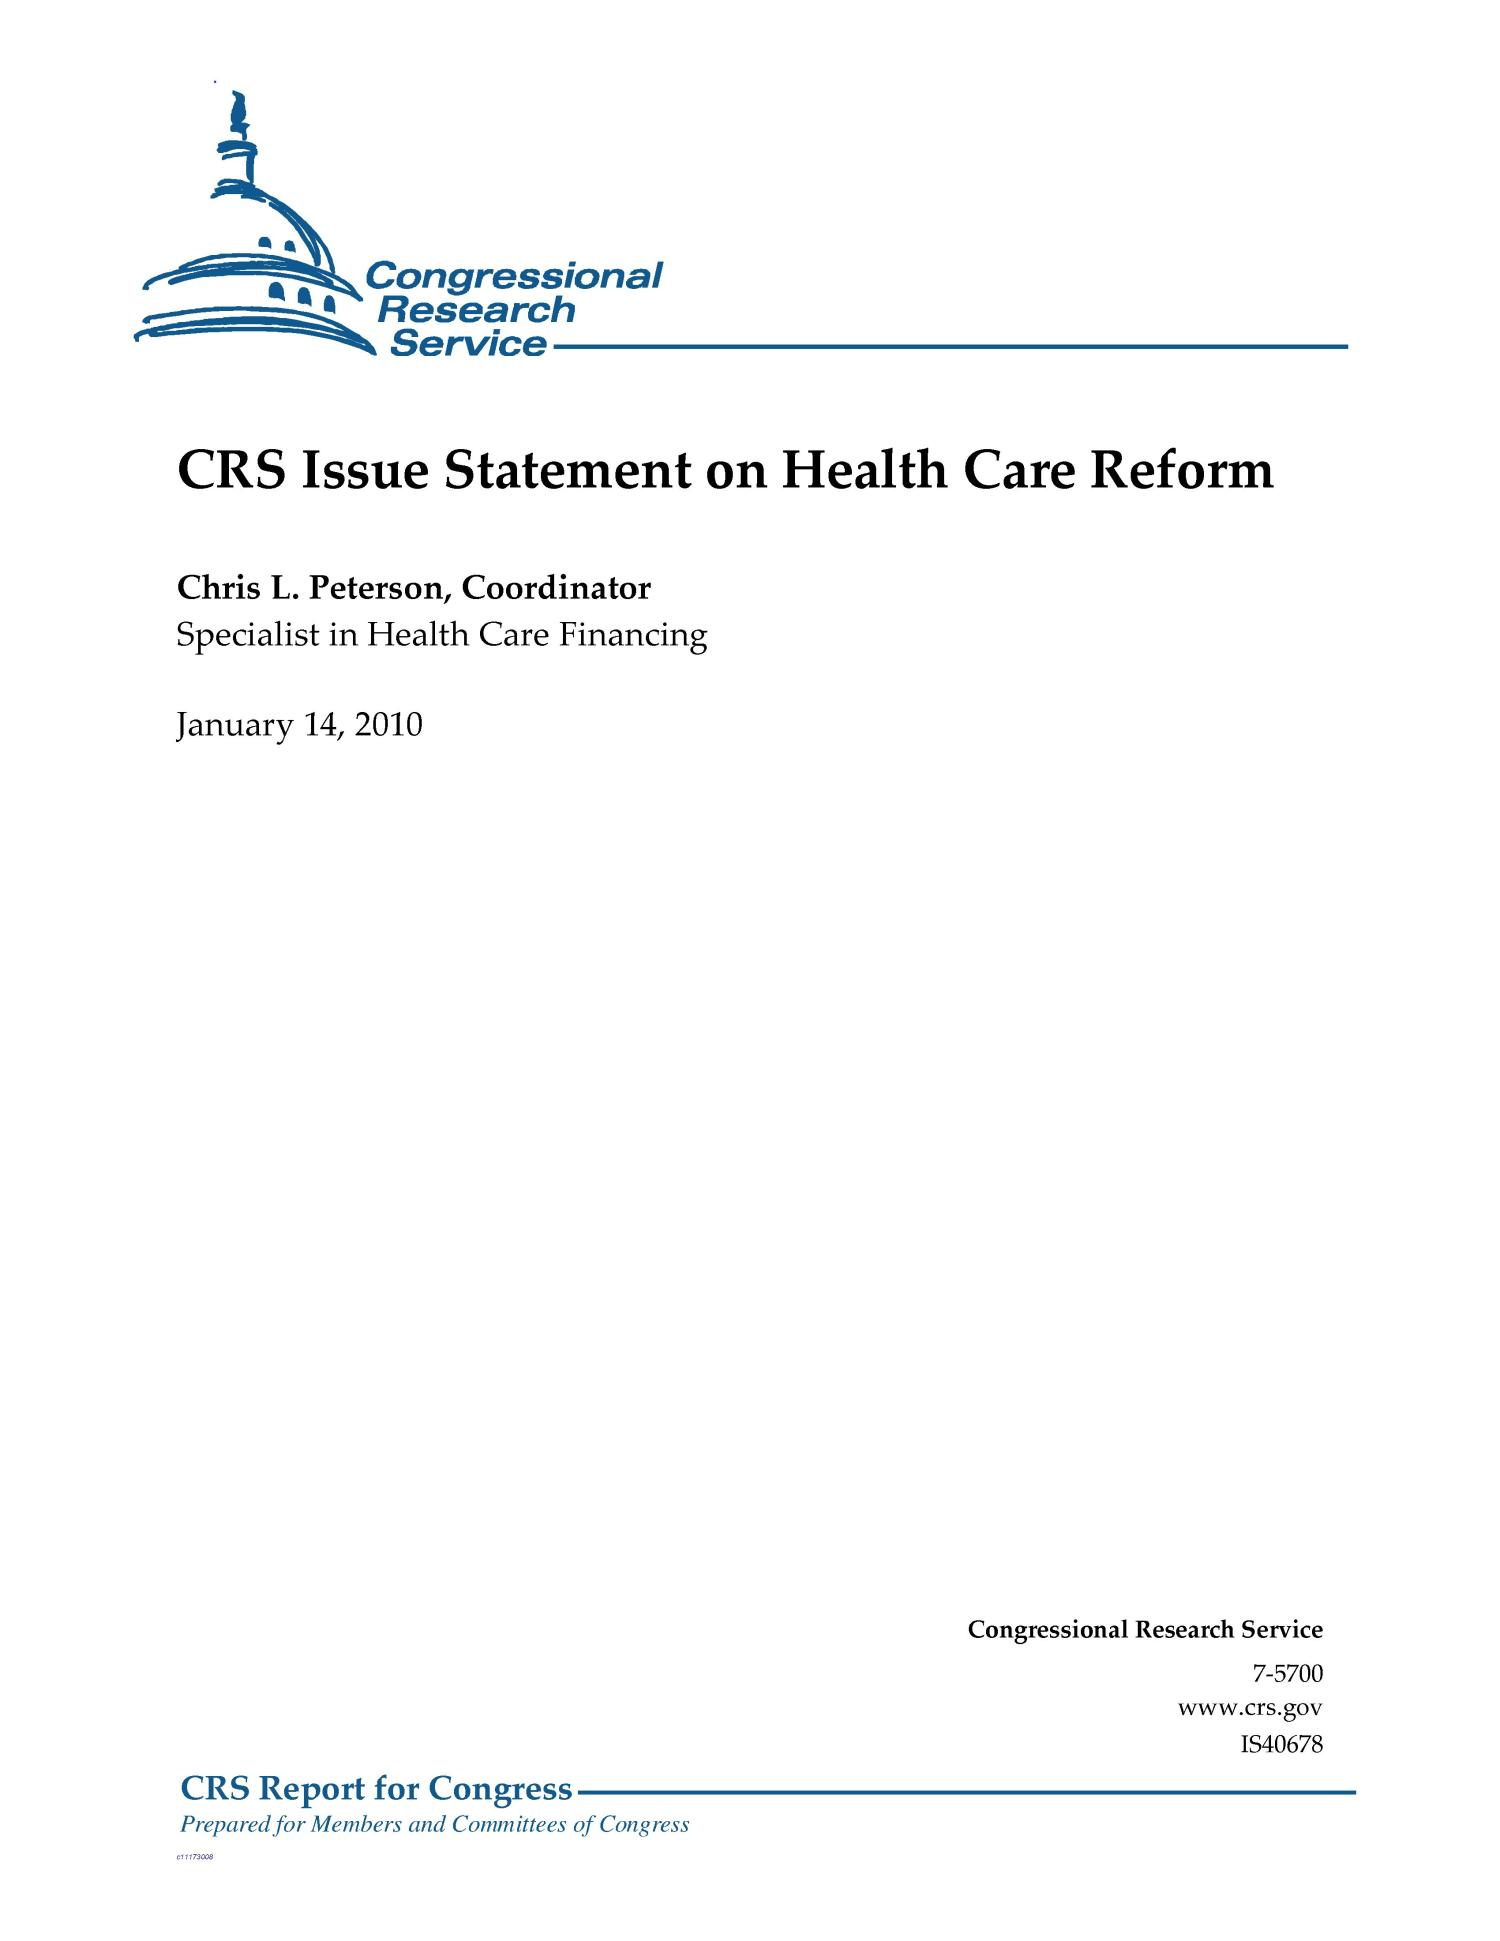 CRS Issue Statement on Health Care Reform                                                                                                      [Sequence #]: 1 of 4